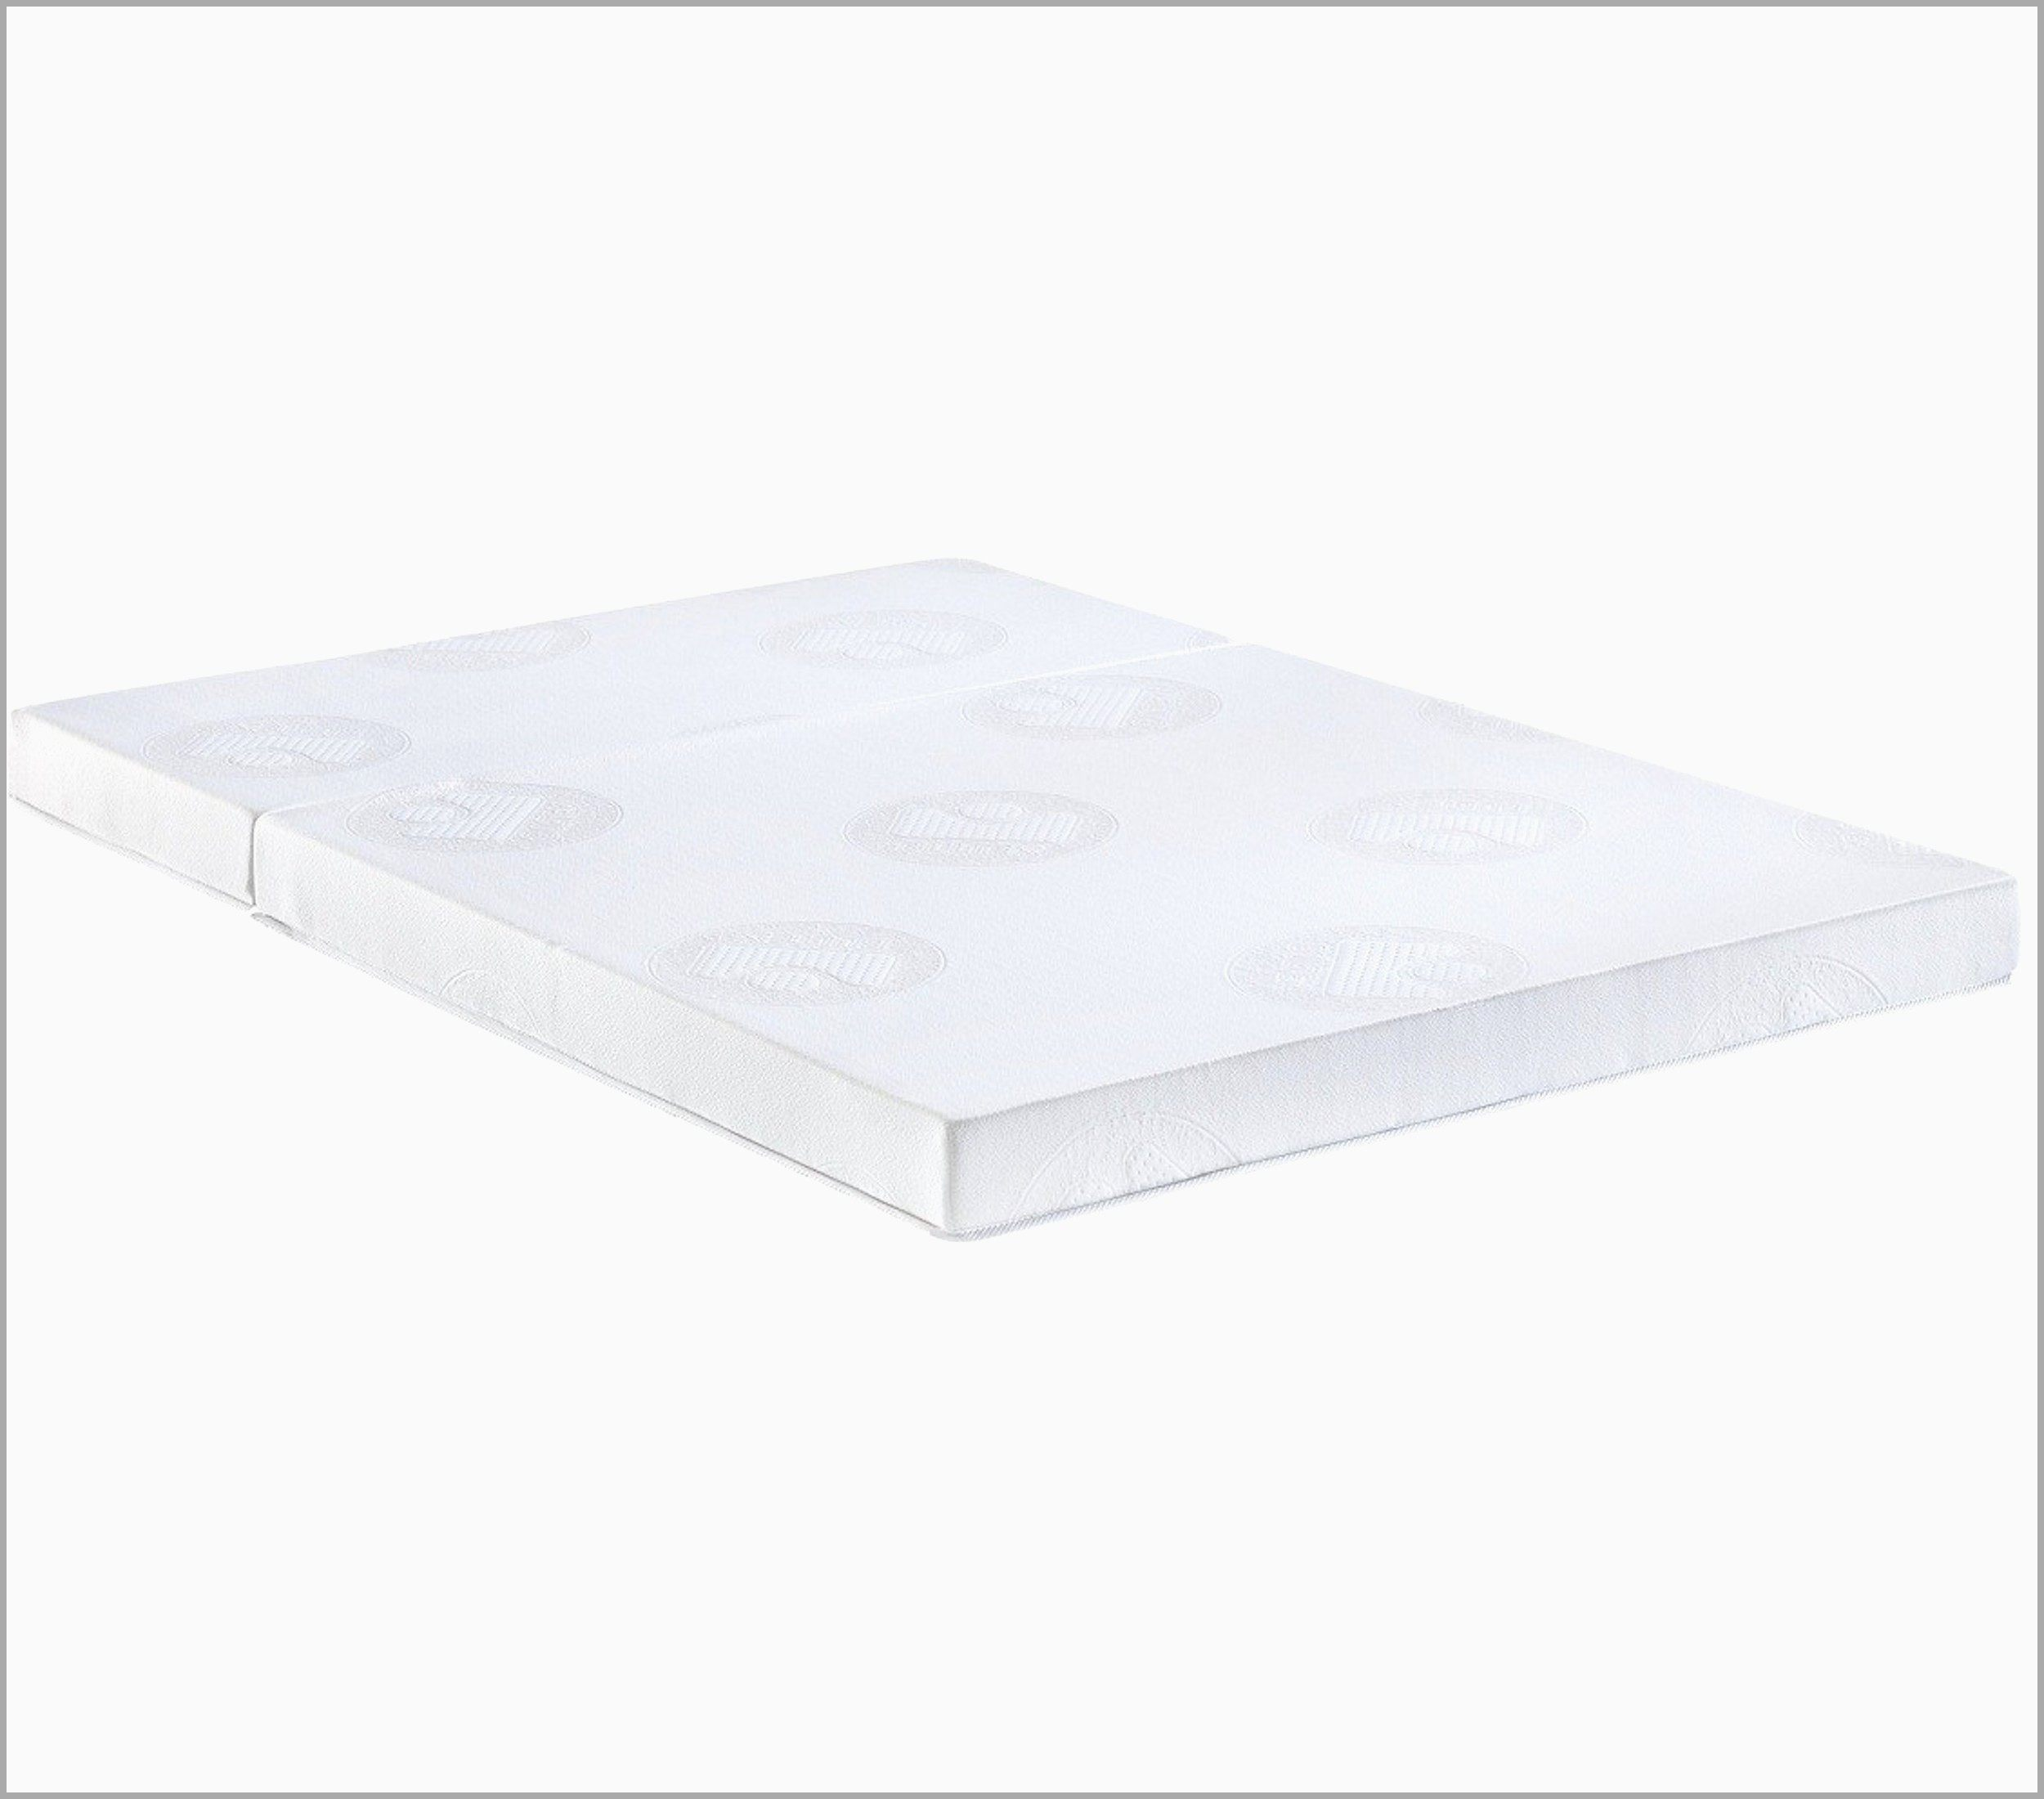 Lit Coffre 160—200 Ikea Charmant Lit Design Led 160—200 Doppelbett